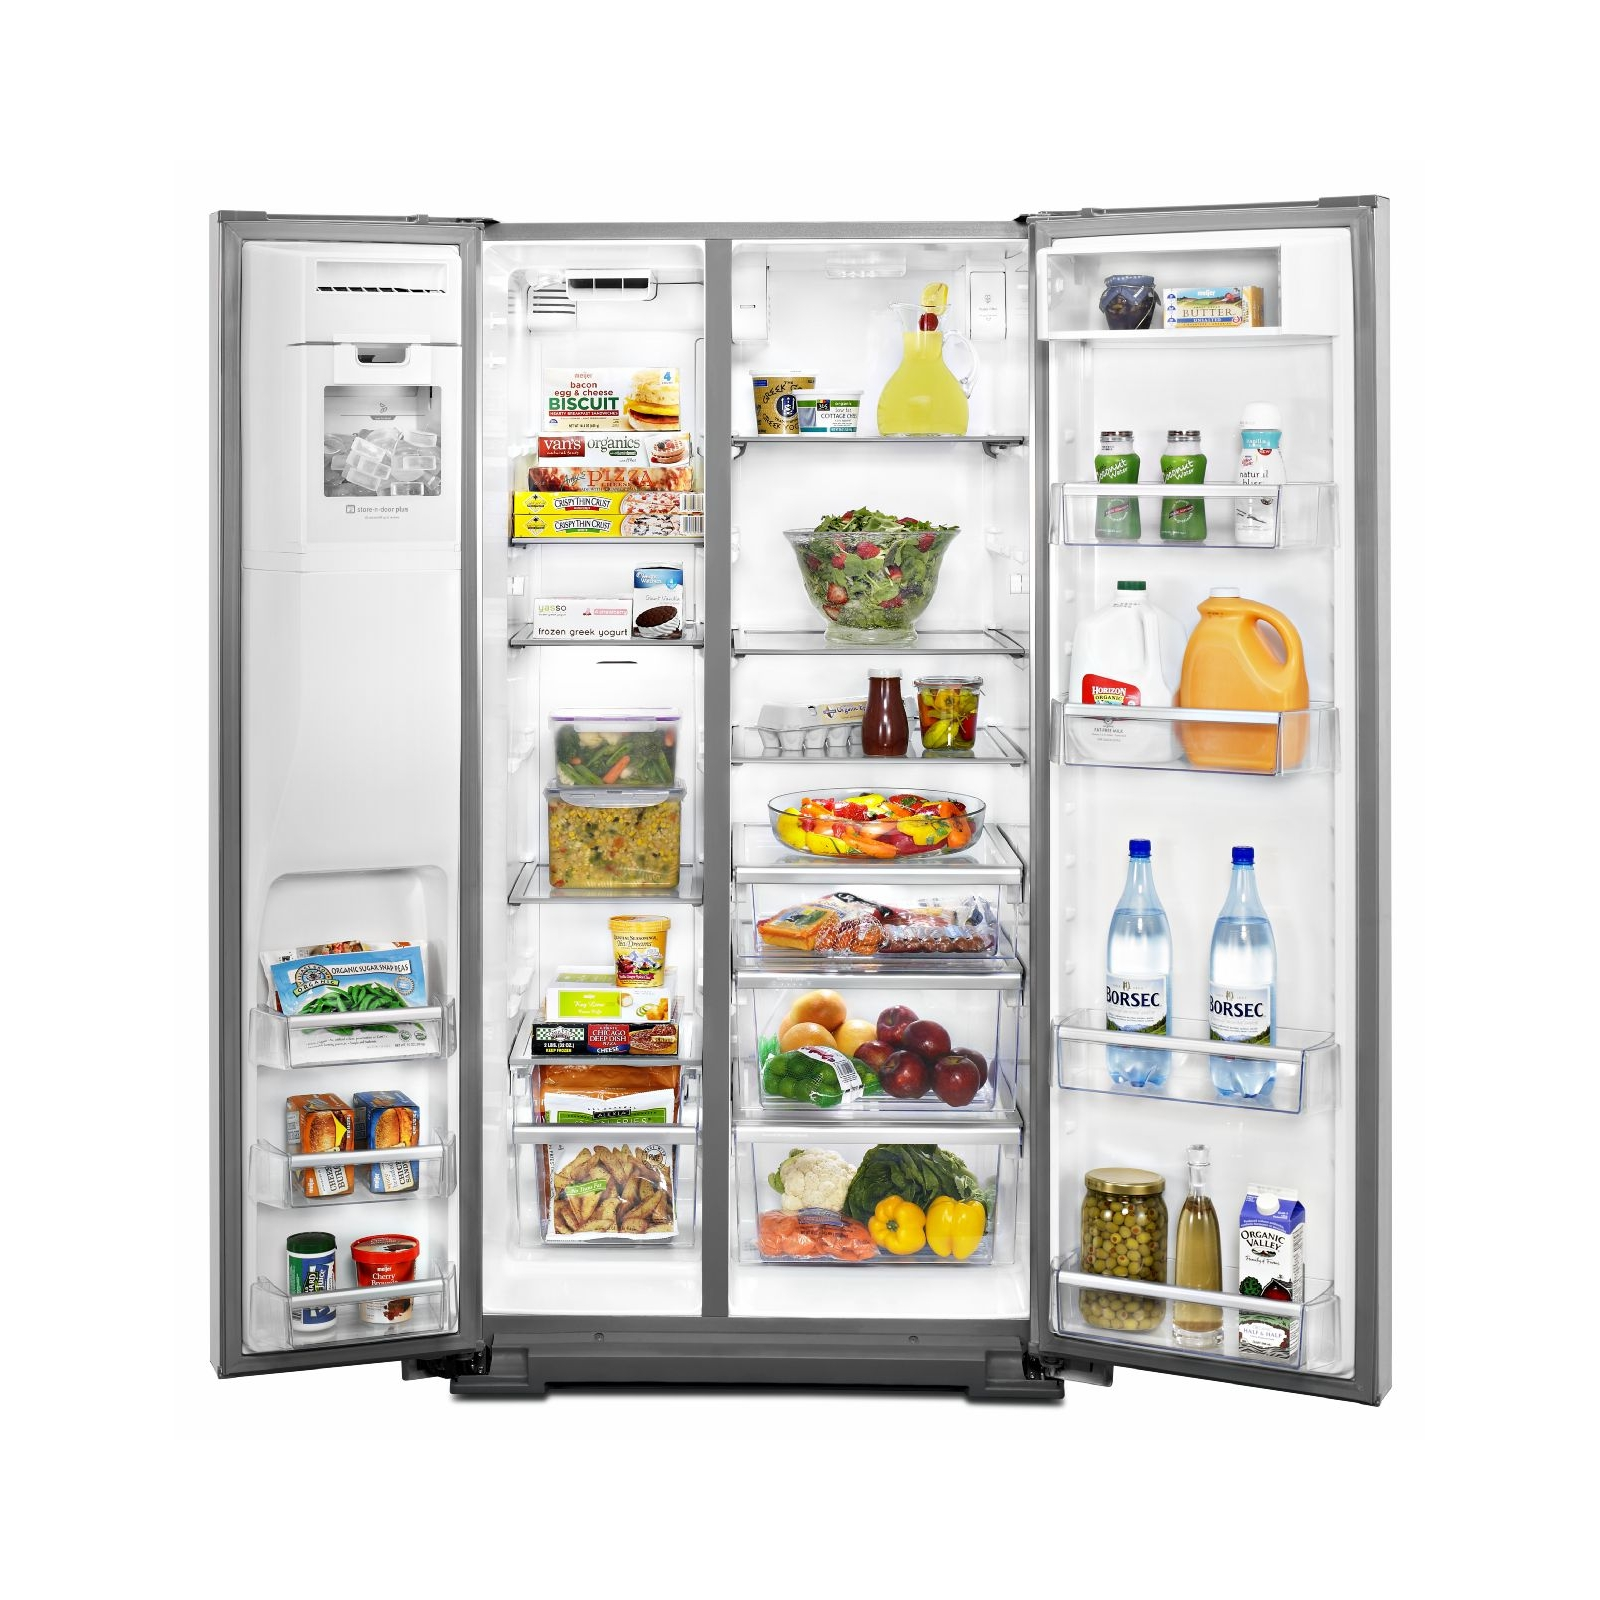 Maytag 26.5 cu. ft. Side-by-Side Refrigerator w/ Contoured Doors - Stainless Steel